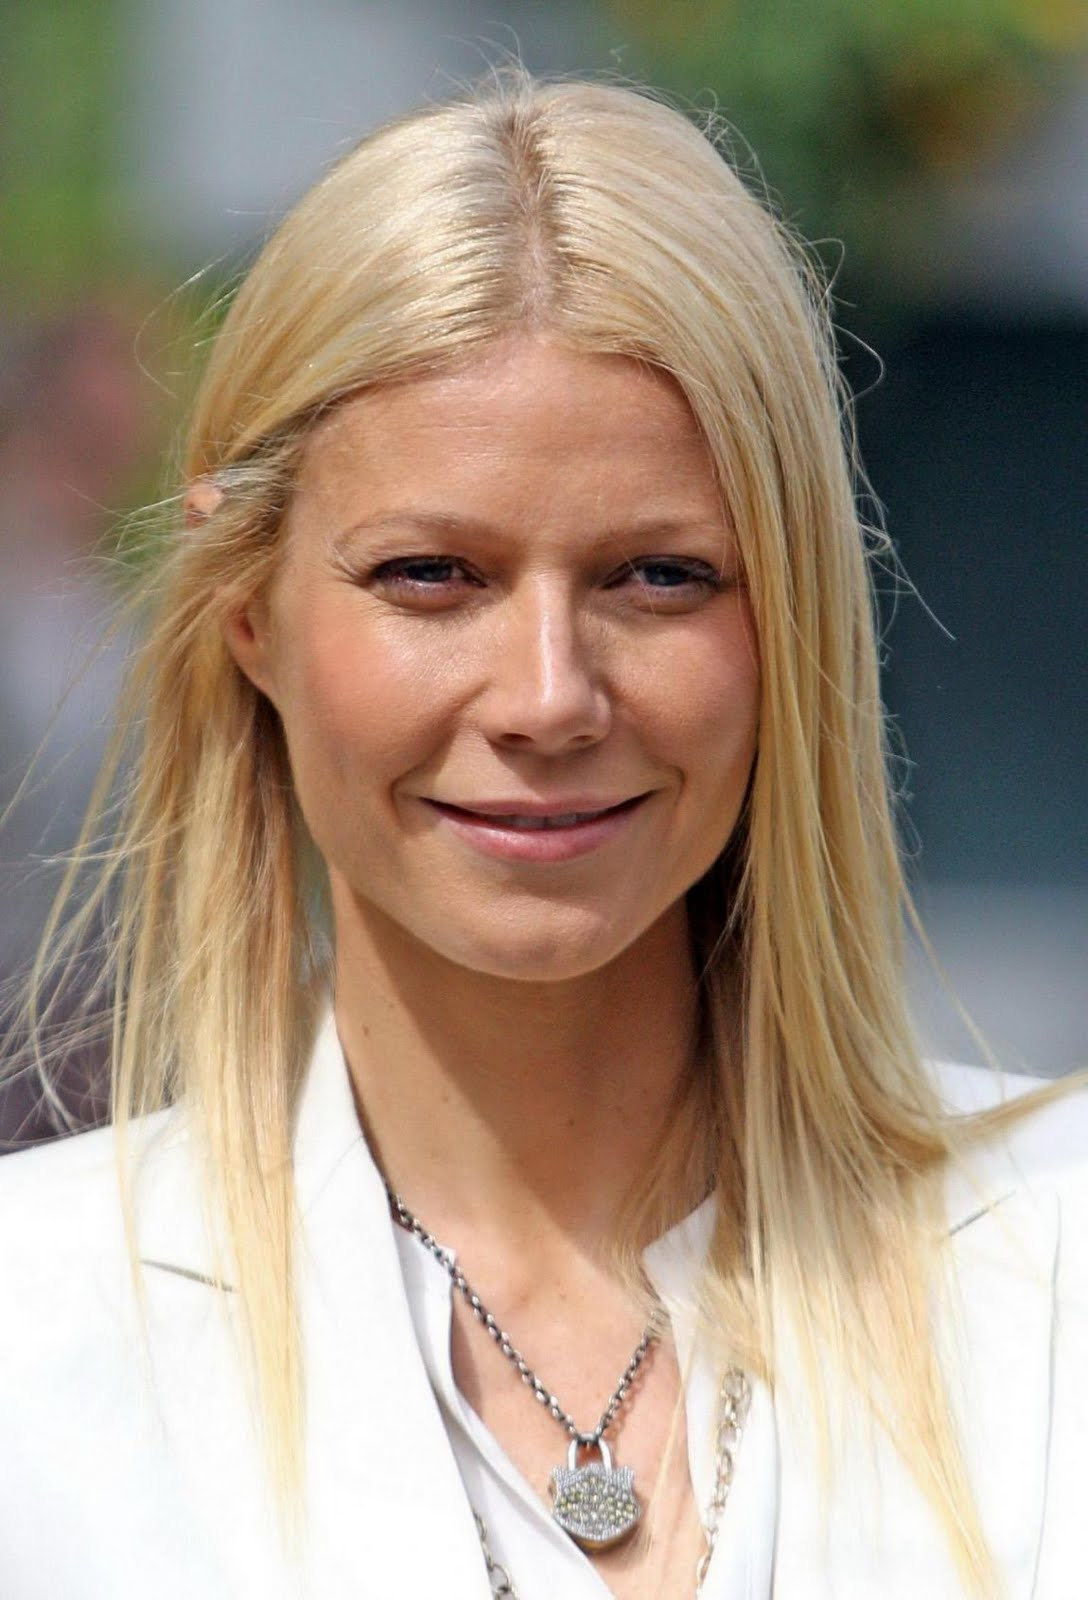 http://4.bp.blogspot.com/-QtYnl70zf7Y/Te1dZykS9ZI/AAAAAAAAKkM/6po57ZtfF-o/s1600/US+actress+Gwyneth+Paltrow+poses+for+a+photograph+at+the+Chelsea+Flower+Show+in+London%252C+on+May+23%252C+2011.+%25282%2529.jpg